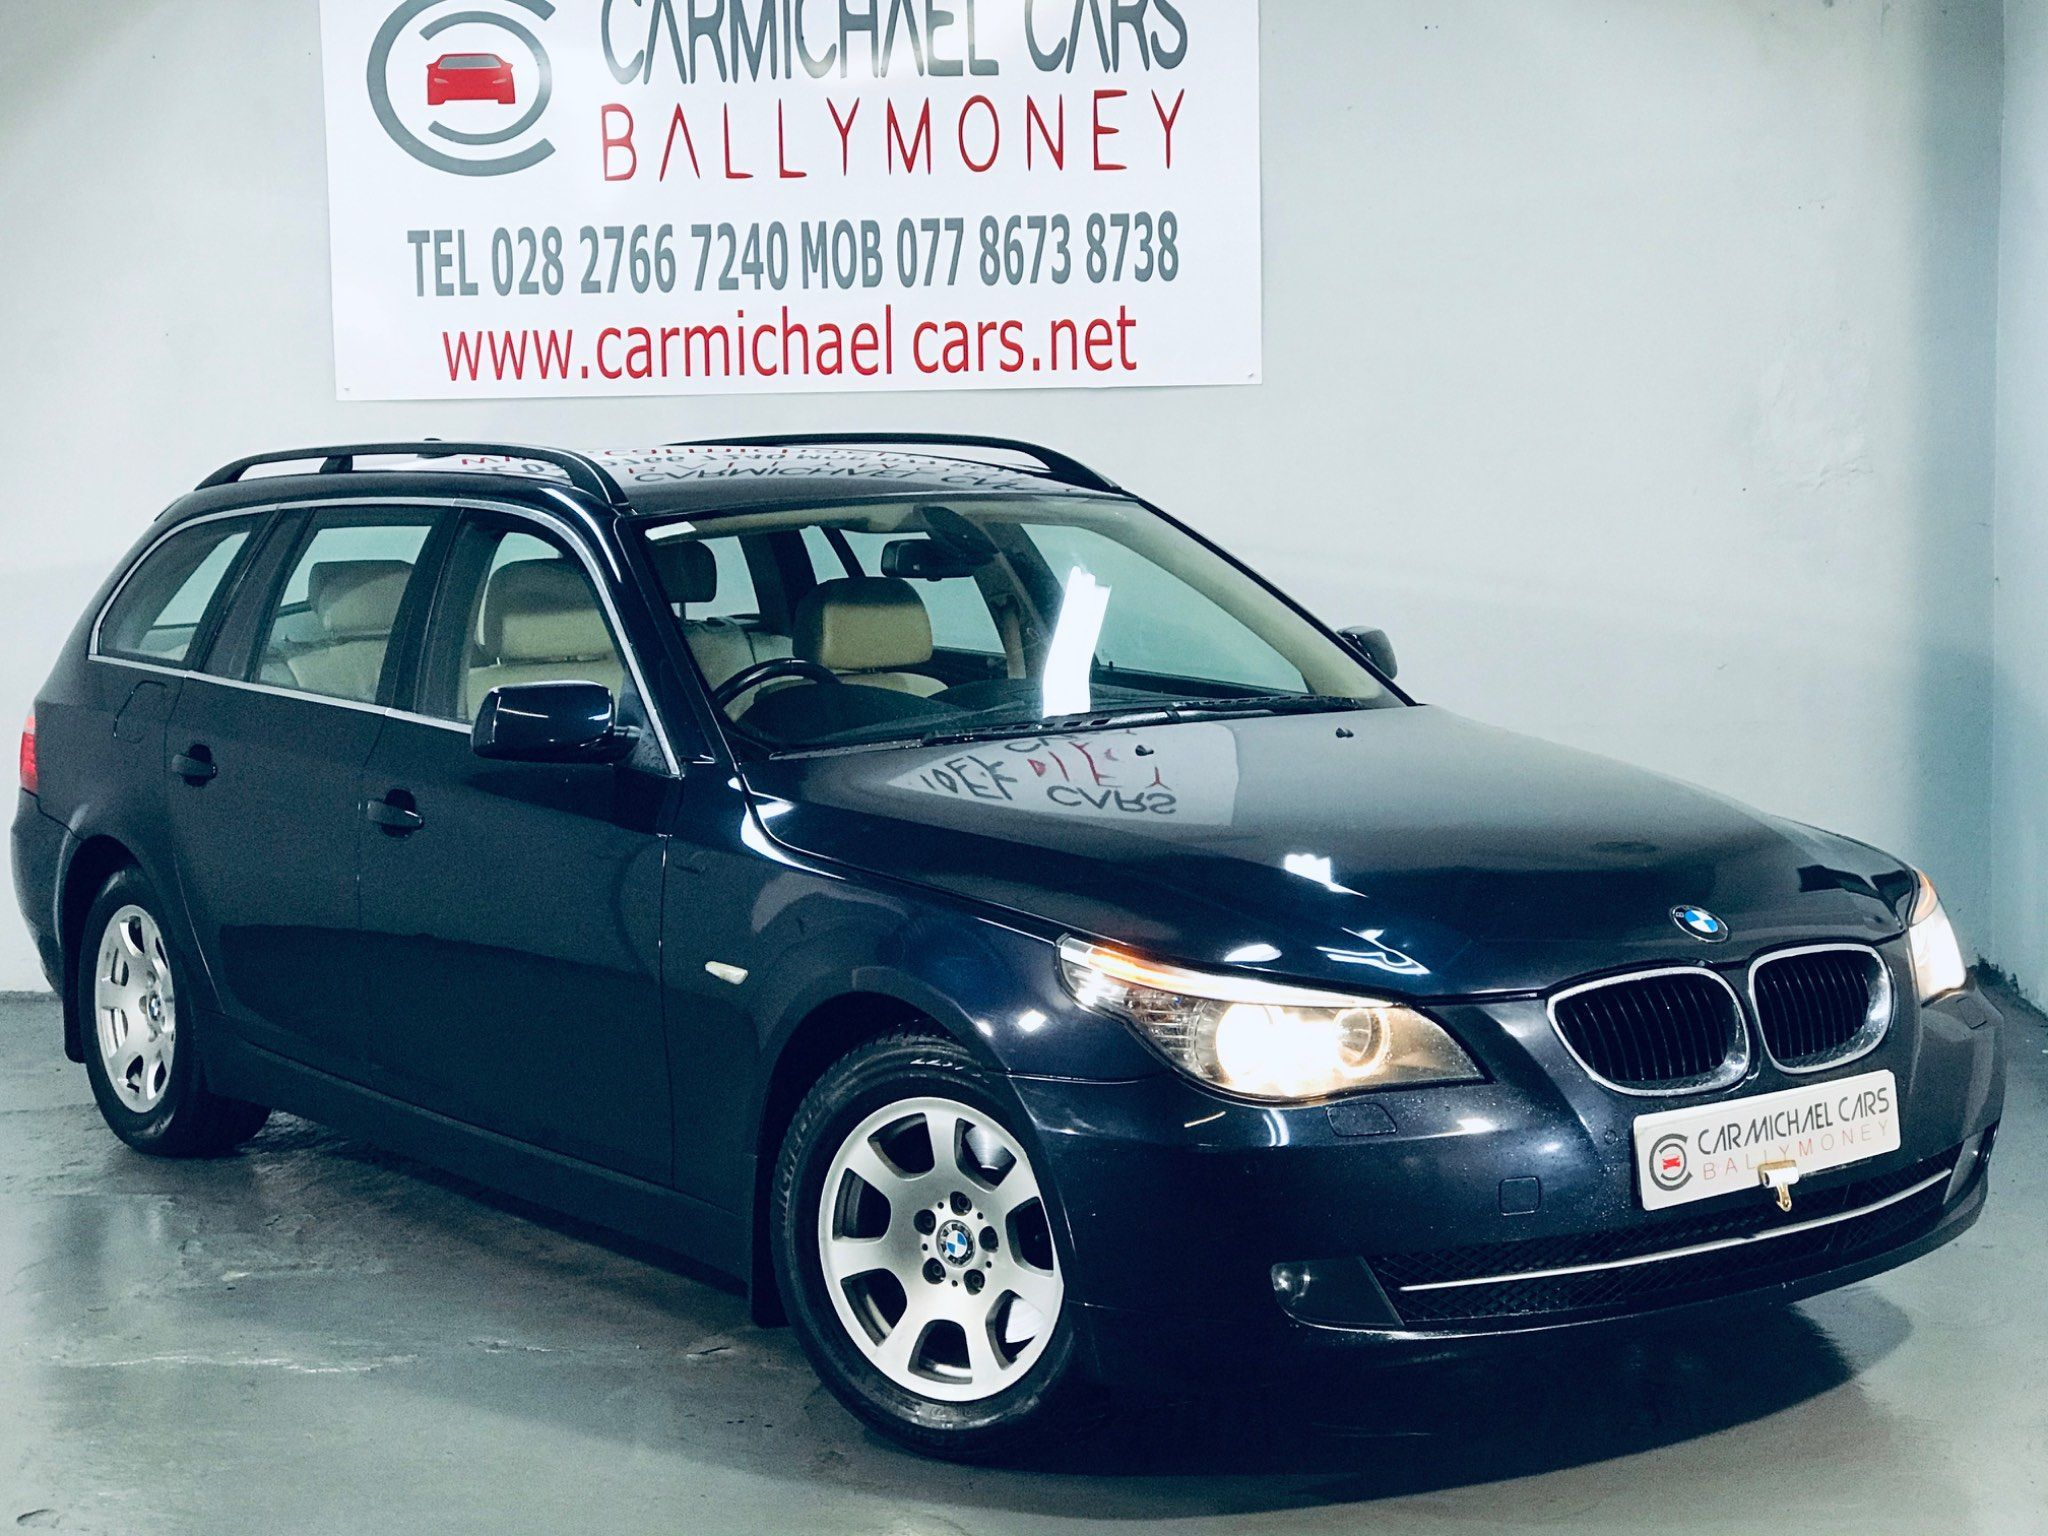 2008 BMW 5 Series 2.0 520d SE Touring Diesel Automatic BLUE, 131K, FULL LEATHER – Carmichael Cars Ballymoney full